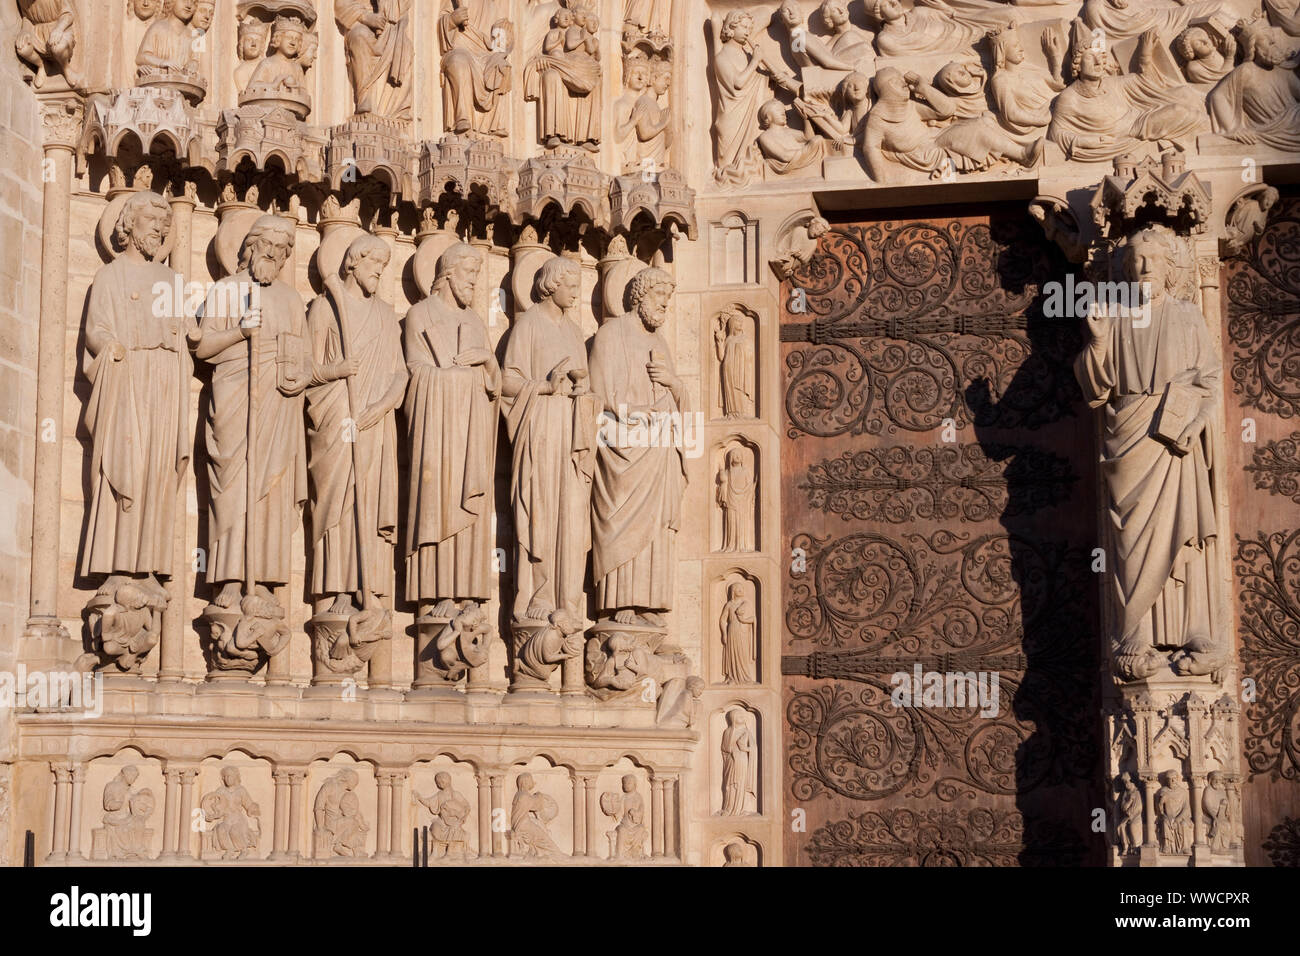 Notre Dame de Paris cathedral, Paris, France. Closeup  ébrasement of  the  Portal of the Last Judgement (main gate). Statues of apostles and Jesus Stock Photo